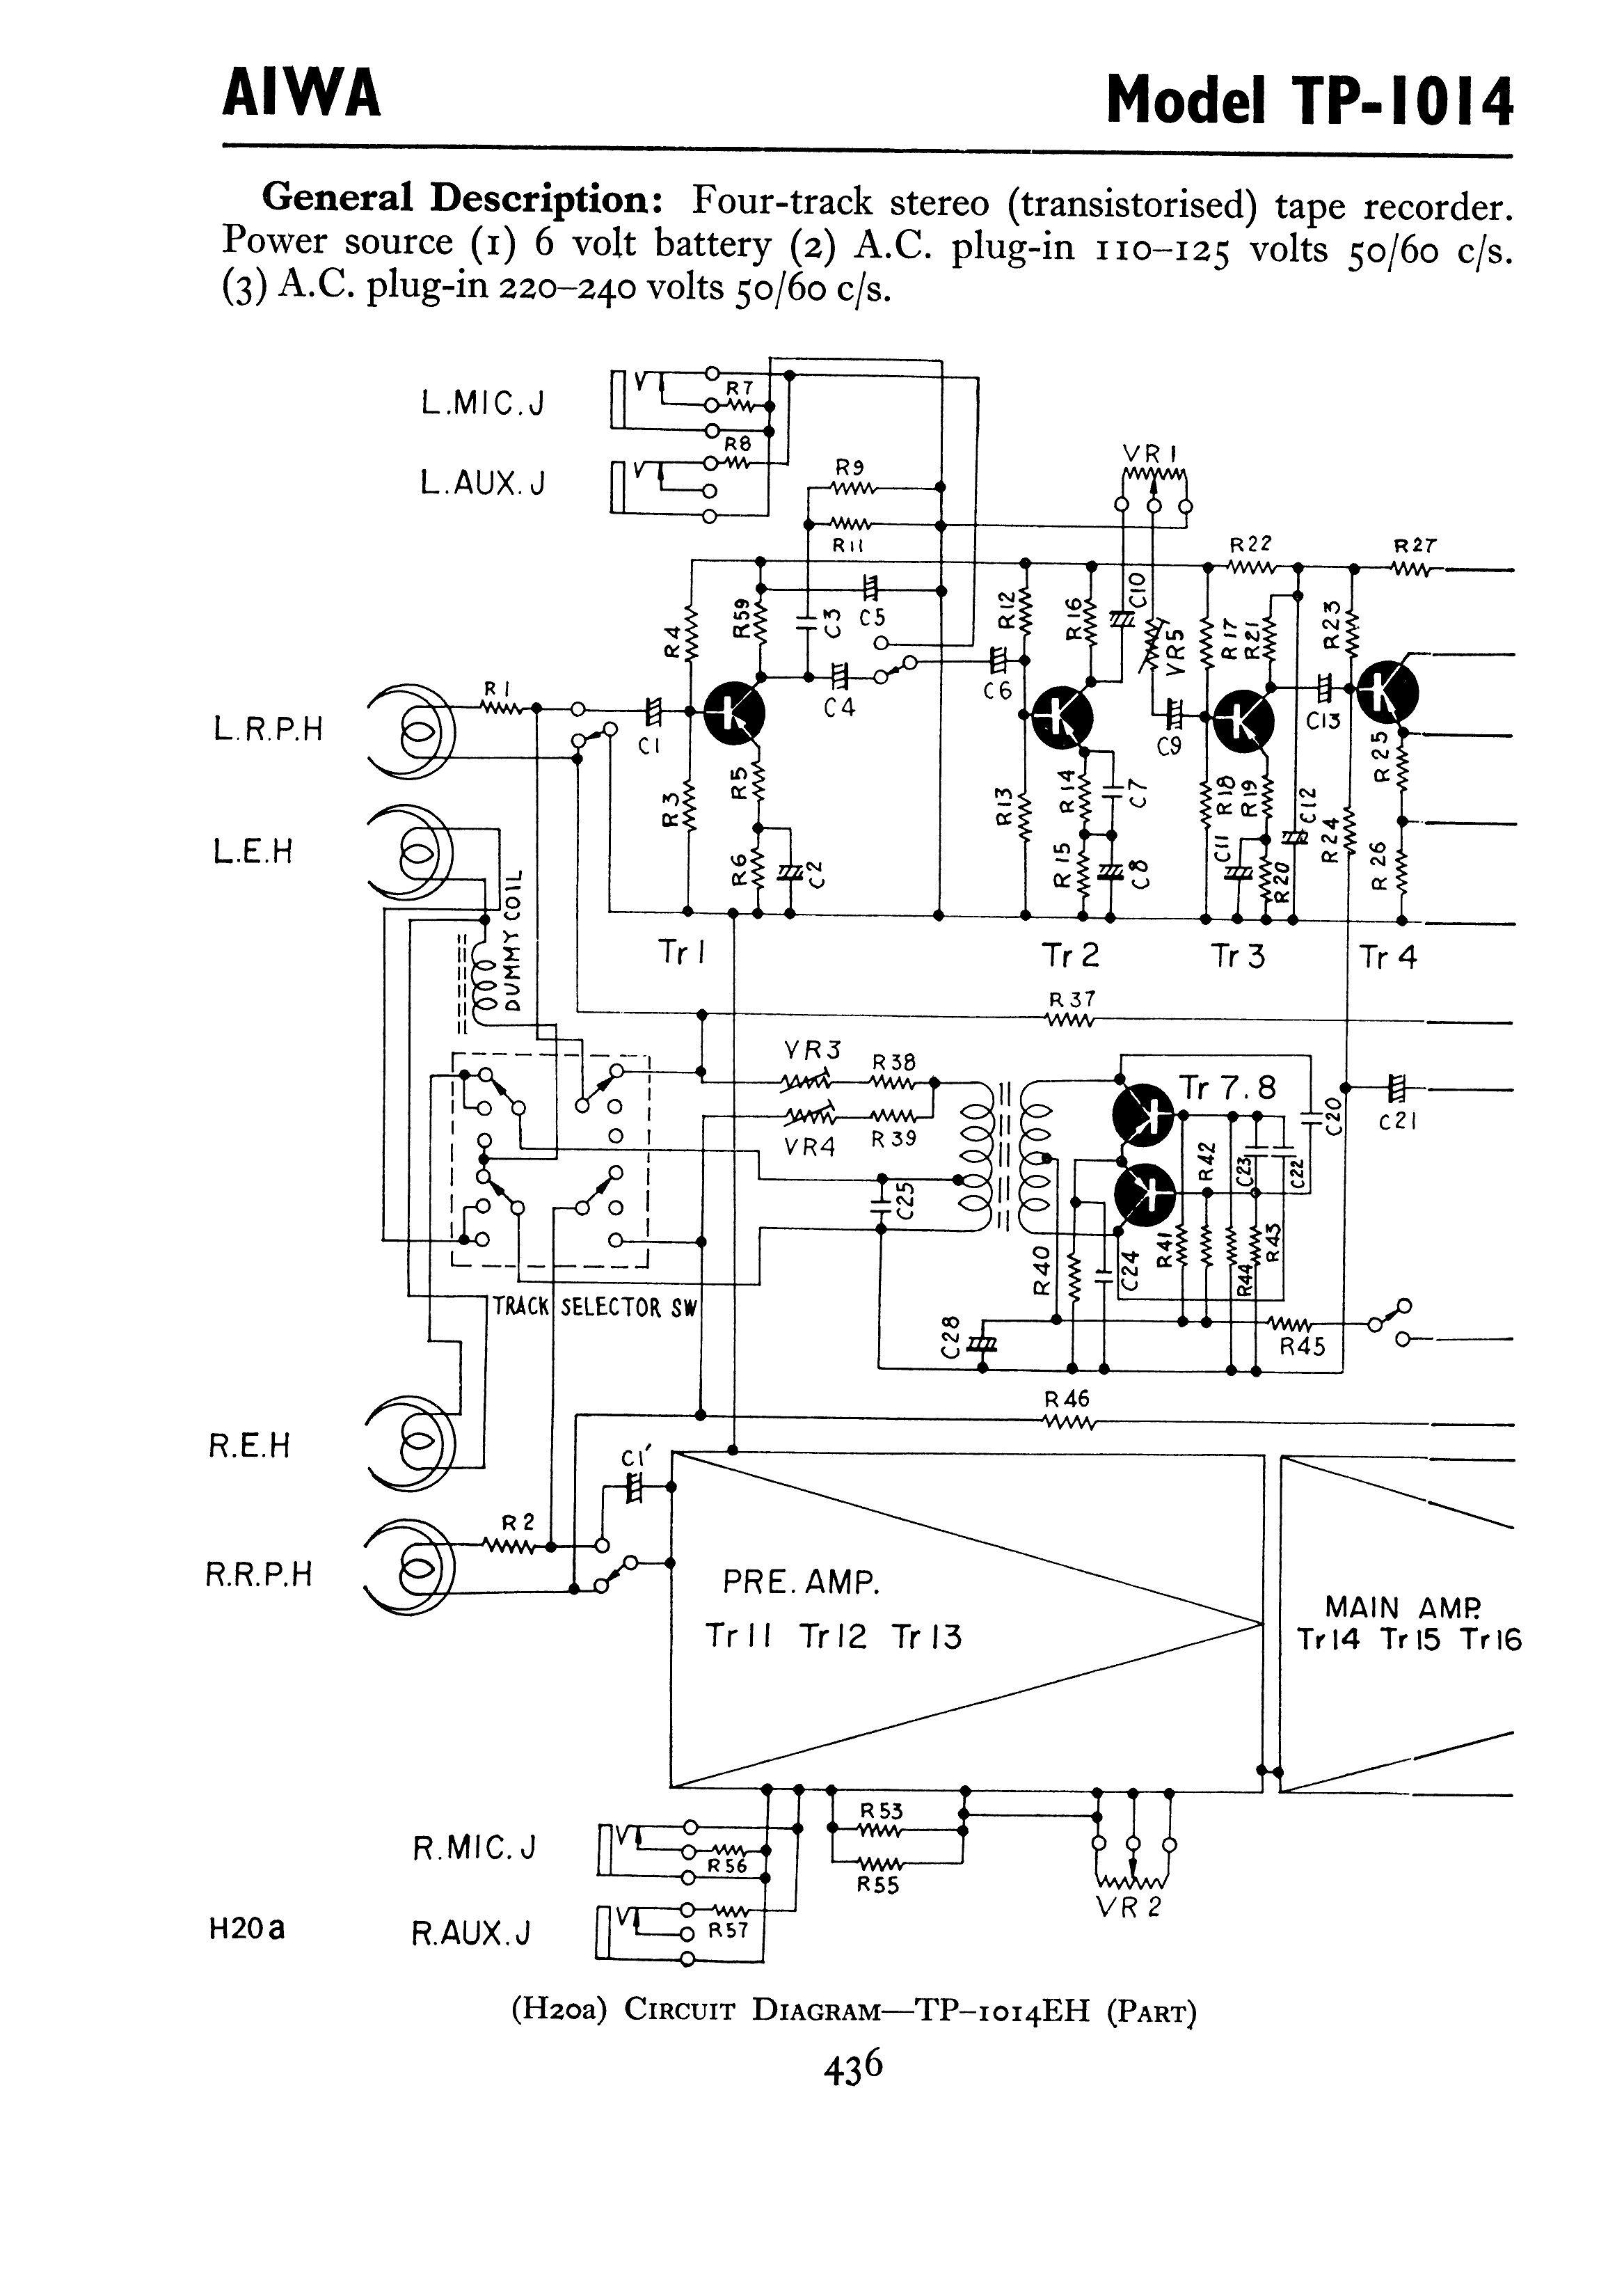 Antique Radio Forums • View topic - AIWA TP-1014 schematic ... on